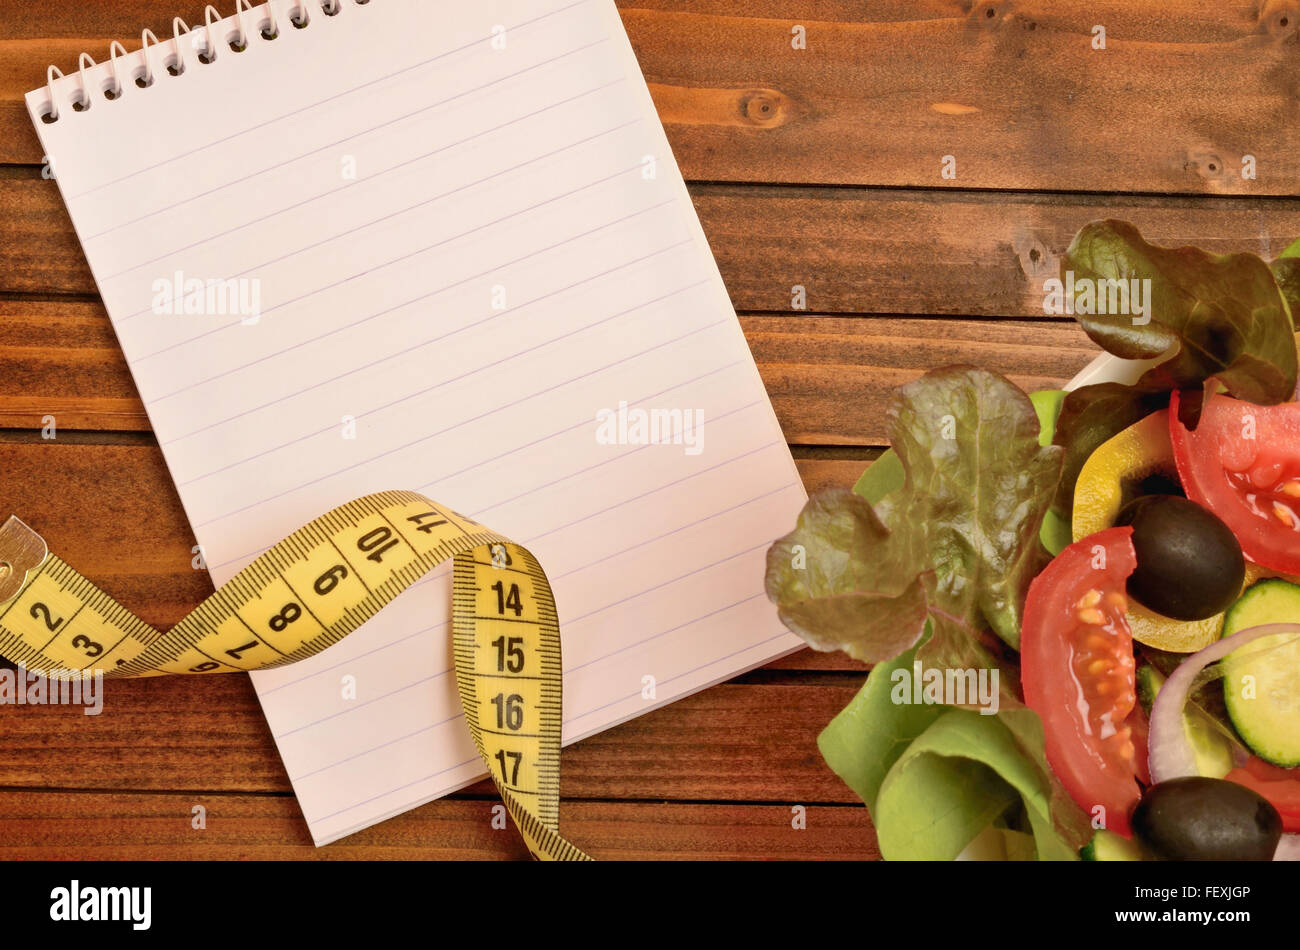 Notepad with centimeter and vegetable salad - Stock Image